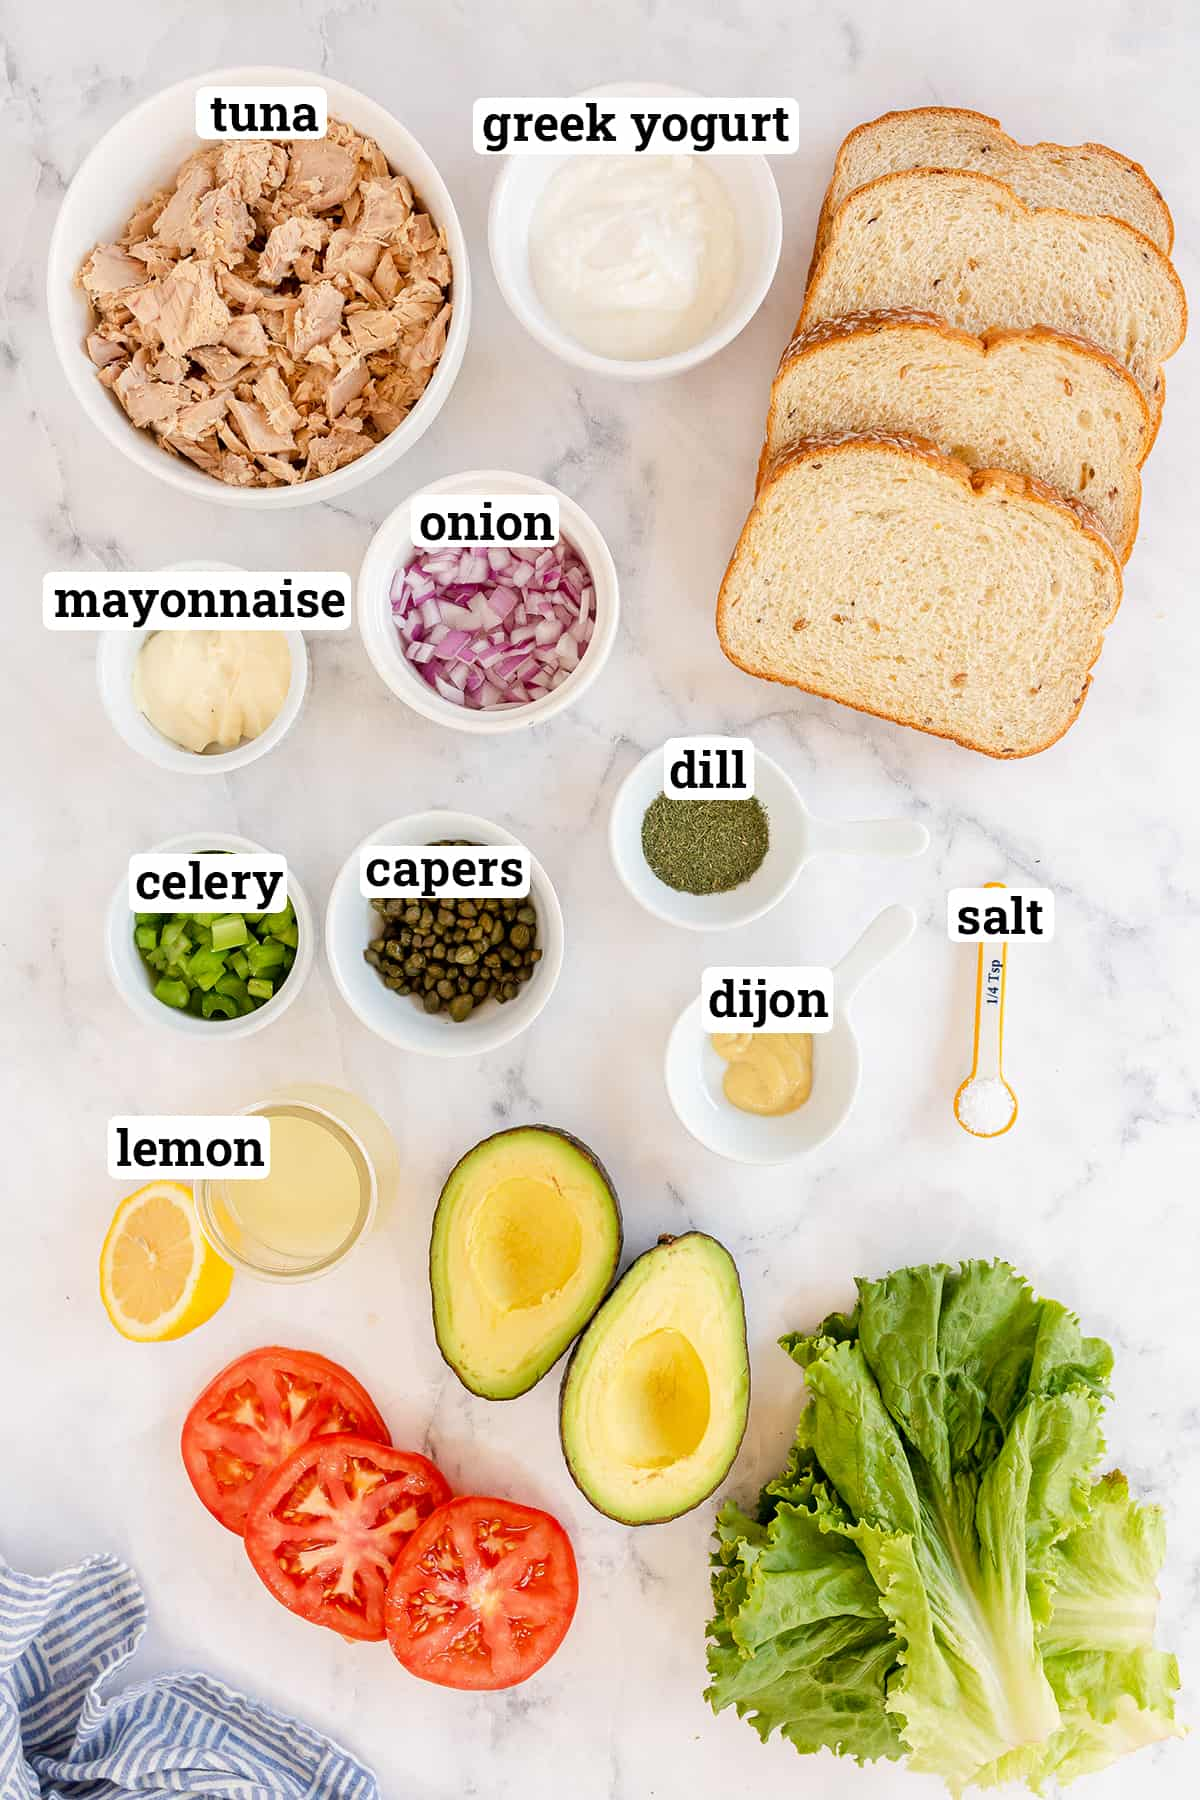 The ingredients to make tuna salad with capers and dill with overlay text.